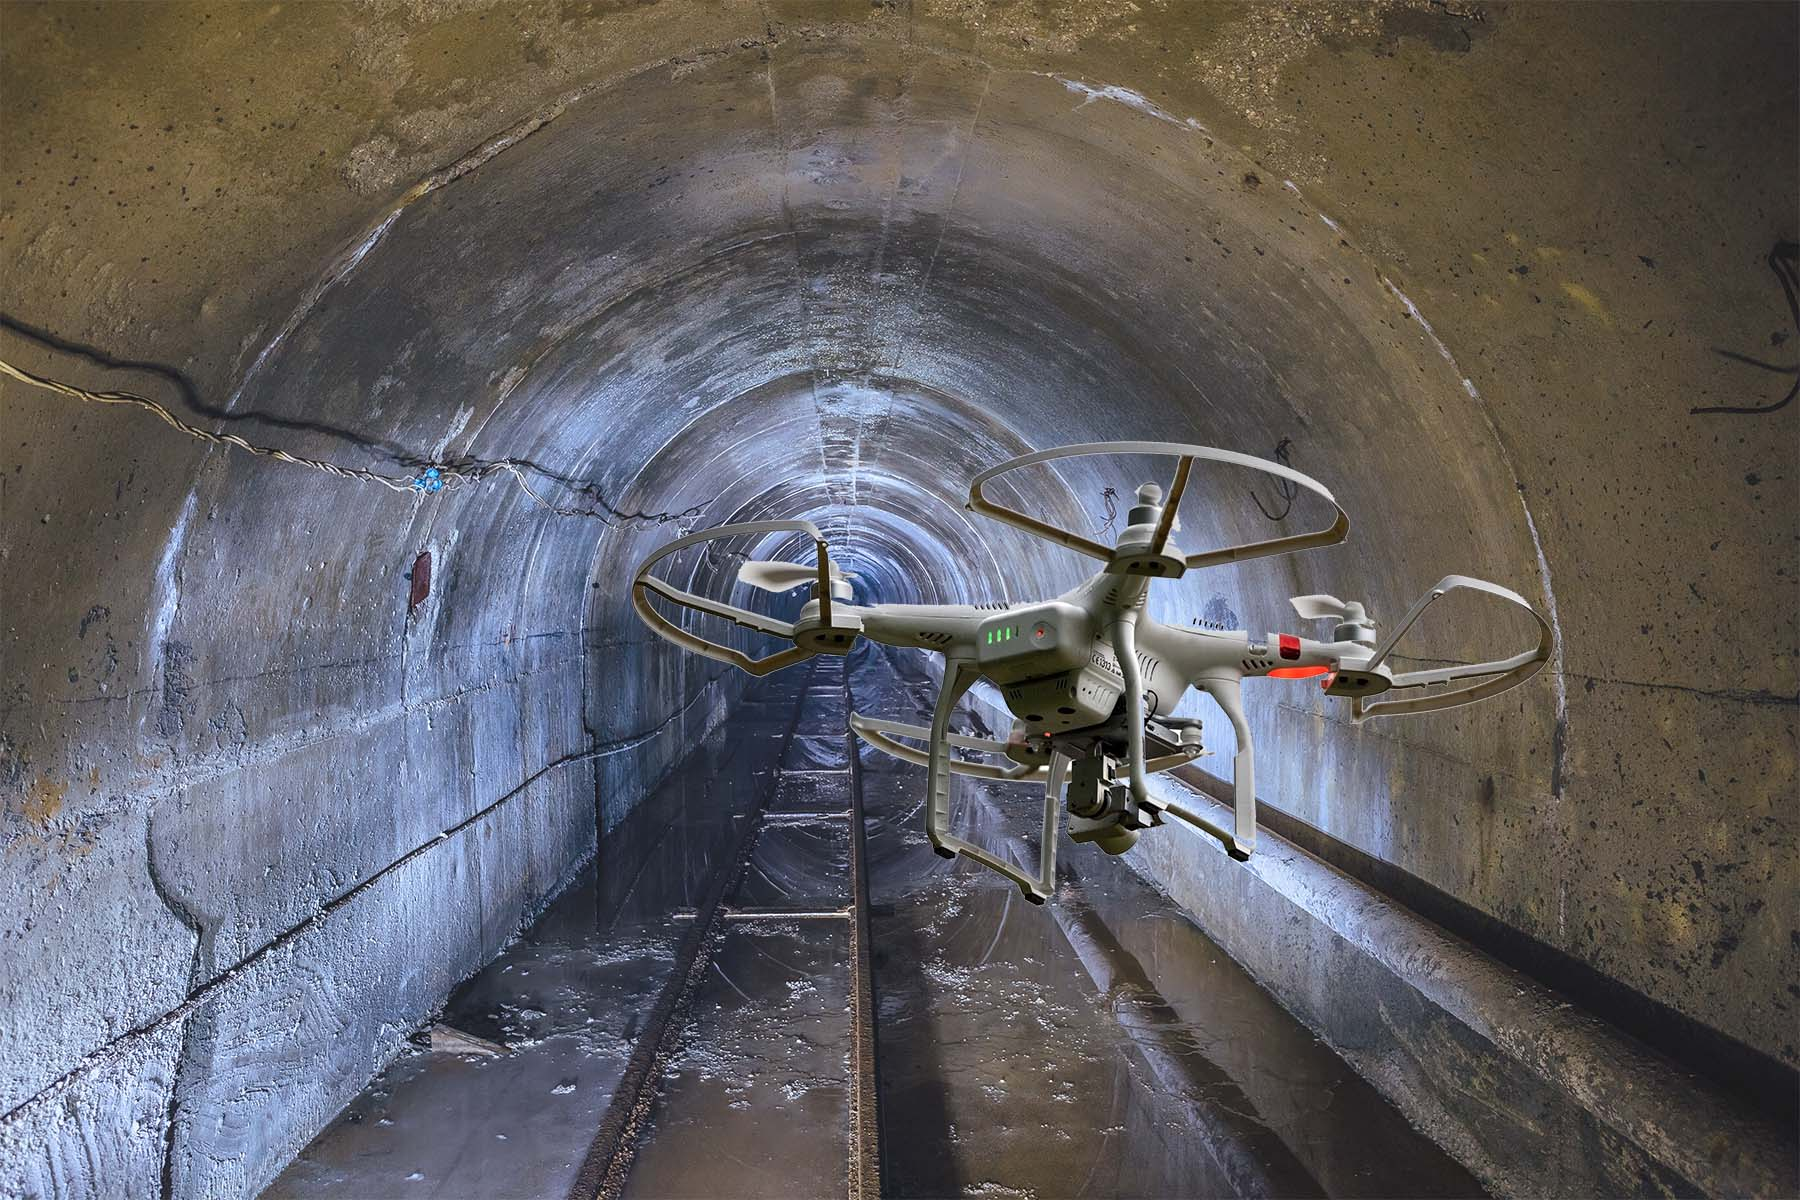 drone in a tunnel